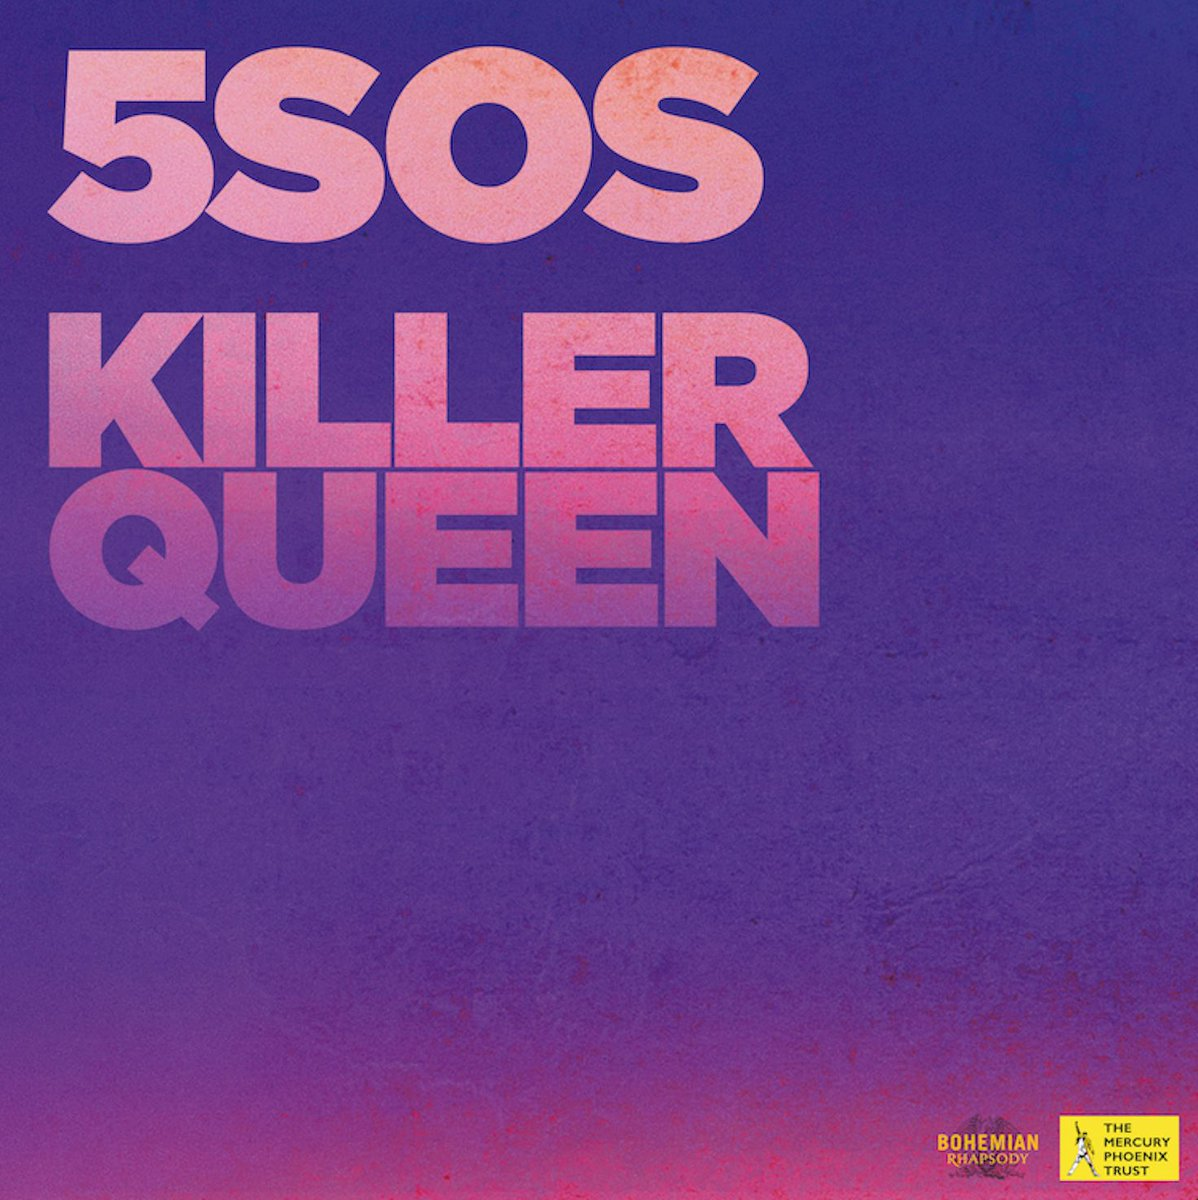 Everyone at @The_MTP is thrilled that @5SOS have joined our global campaign fighting AIDS. Thank you 5SOS for giving us such an impeccable version of @MercuryMOTG classic Killer Queen. - Jim Beach  #WorldAIDSDay http://www.mercuryphoenixtrust.com